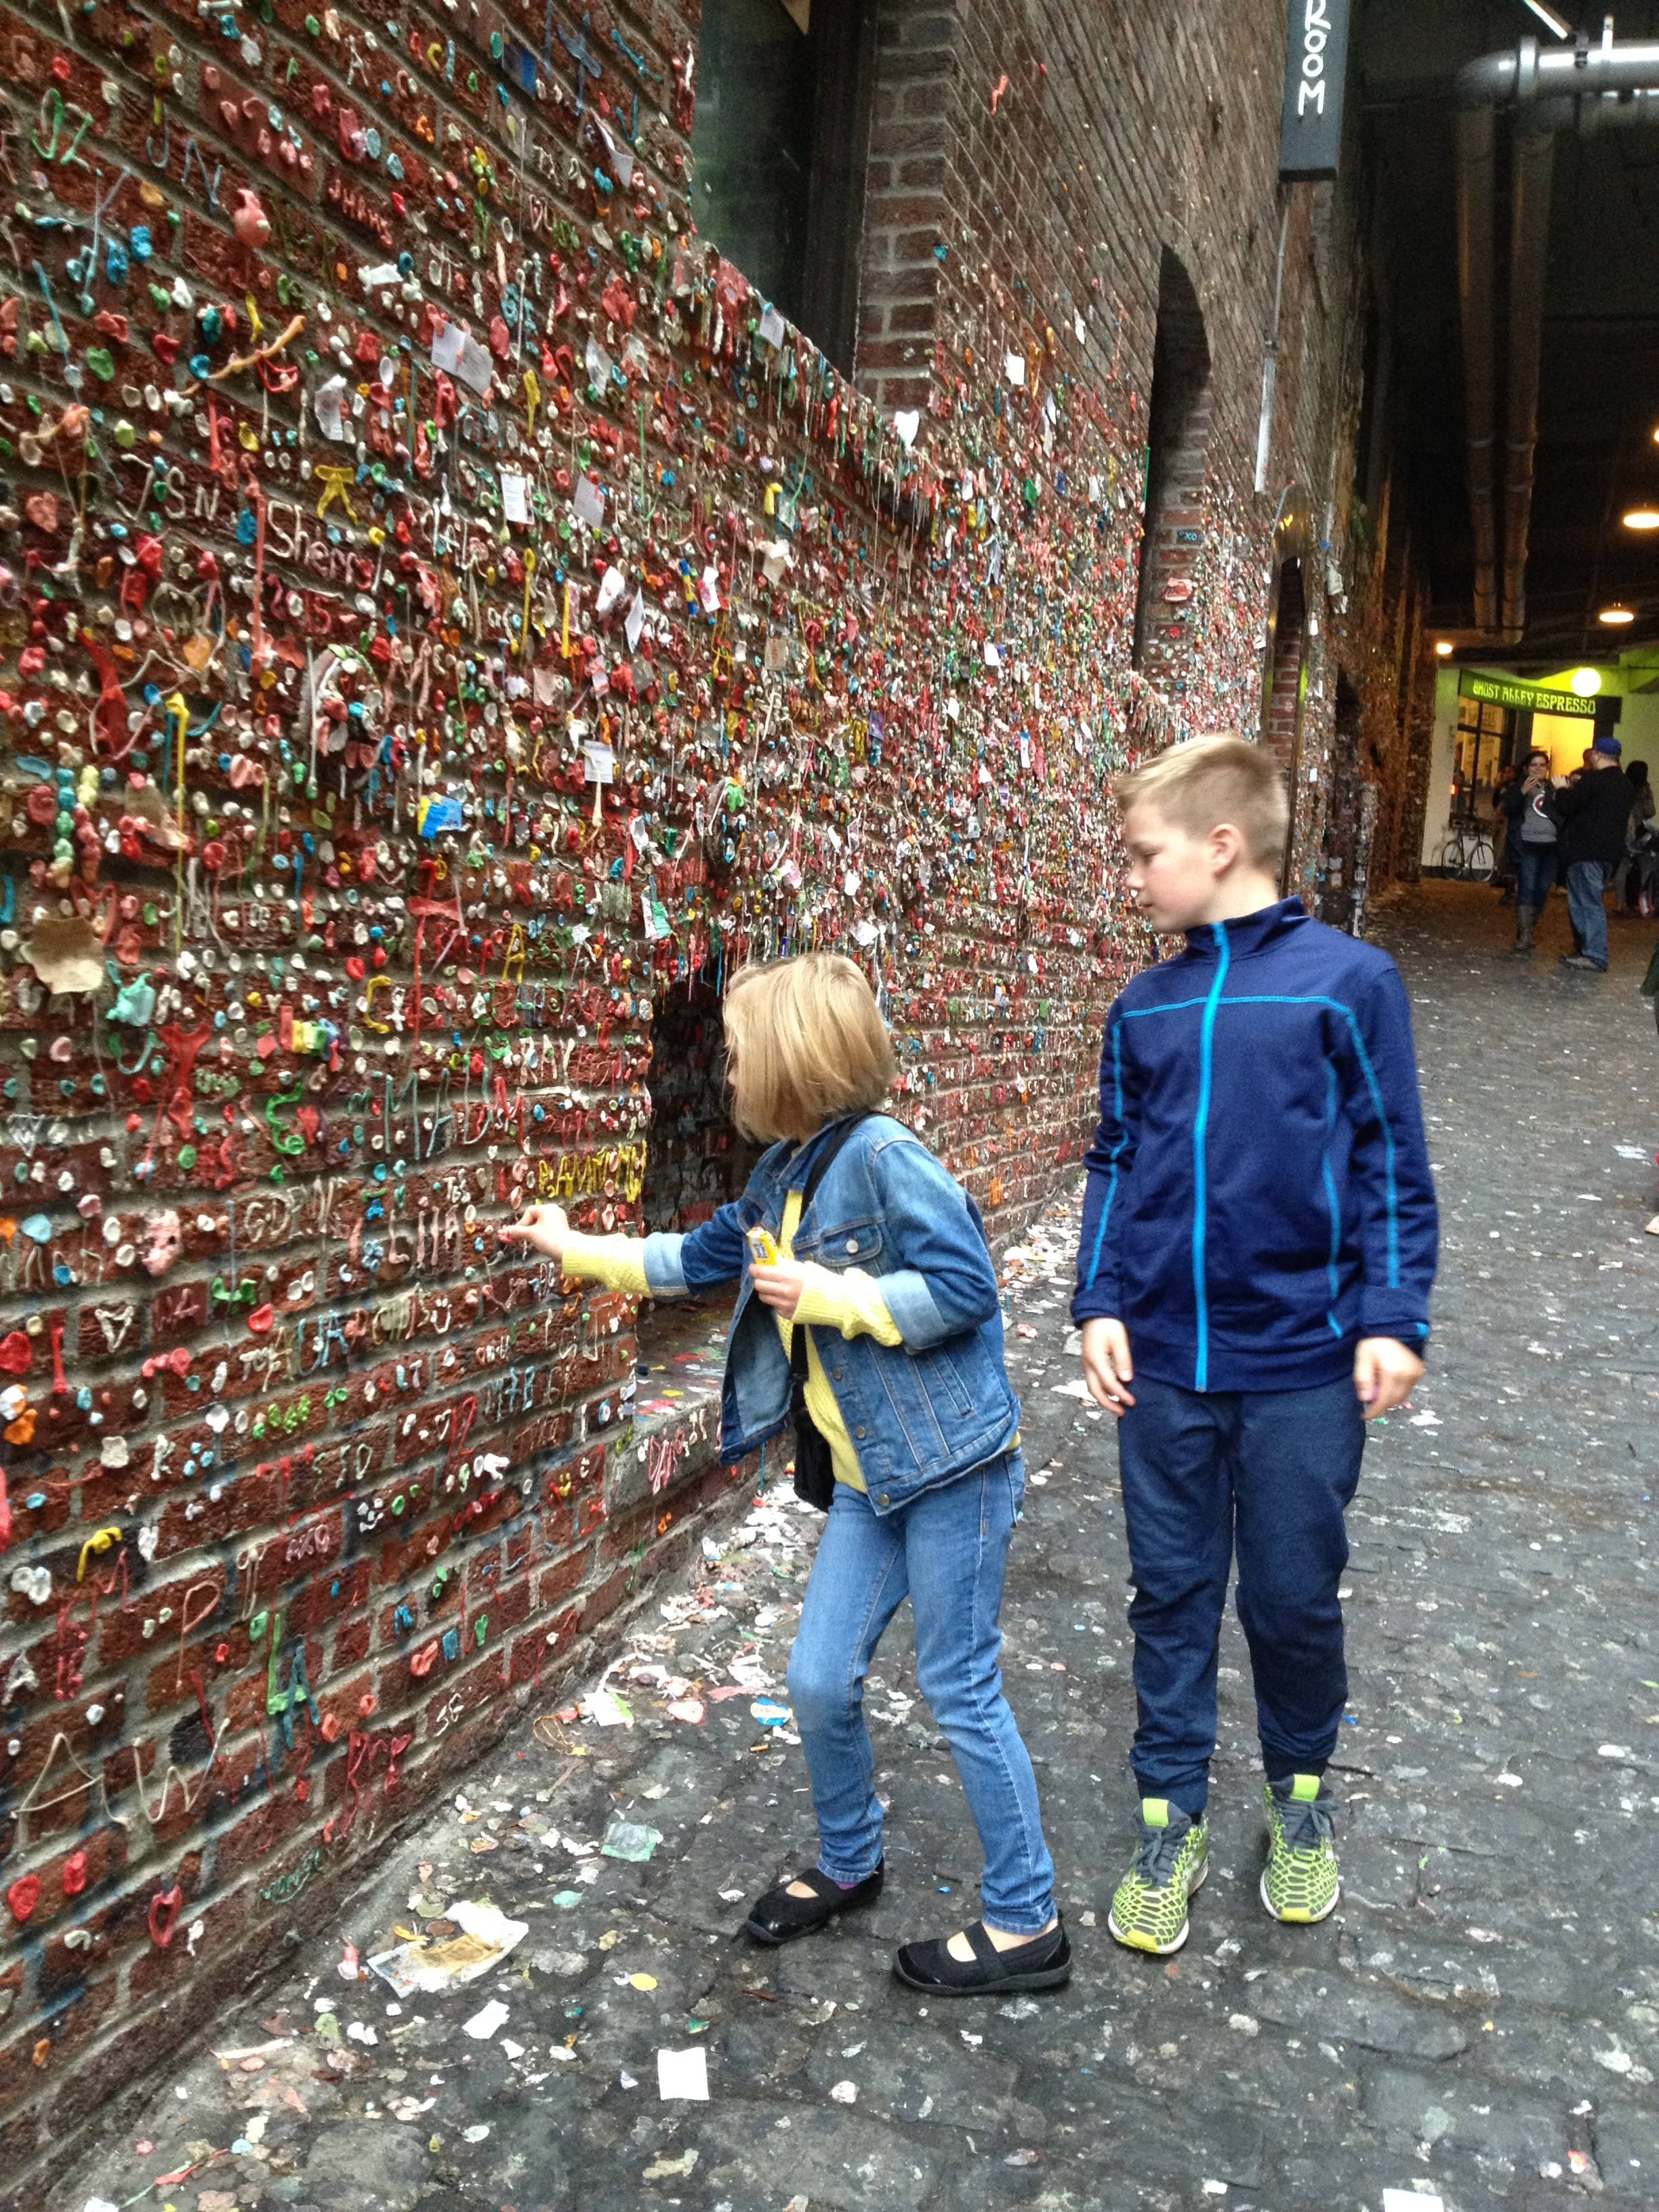 Public art or tourist vandalism? The Gum Wall.